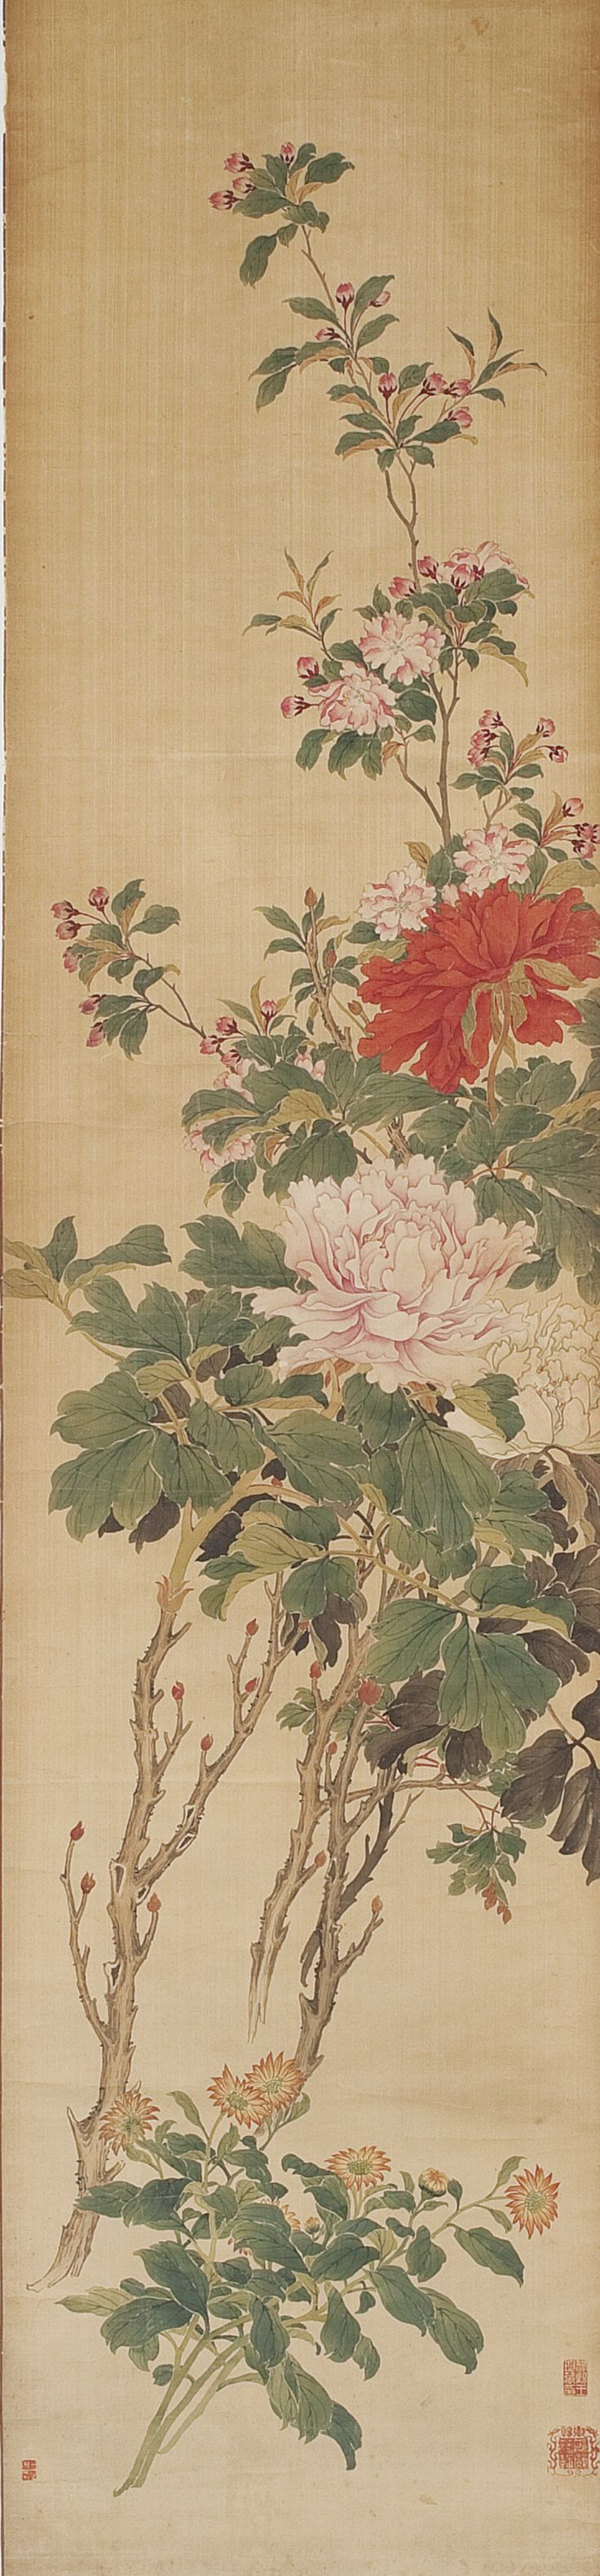 Zou Yigui, Attributed to 1686-1772 | Lot | Sotheby's